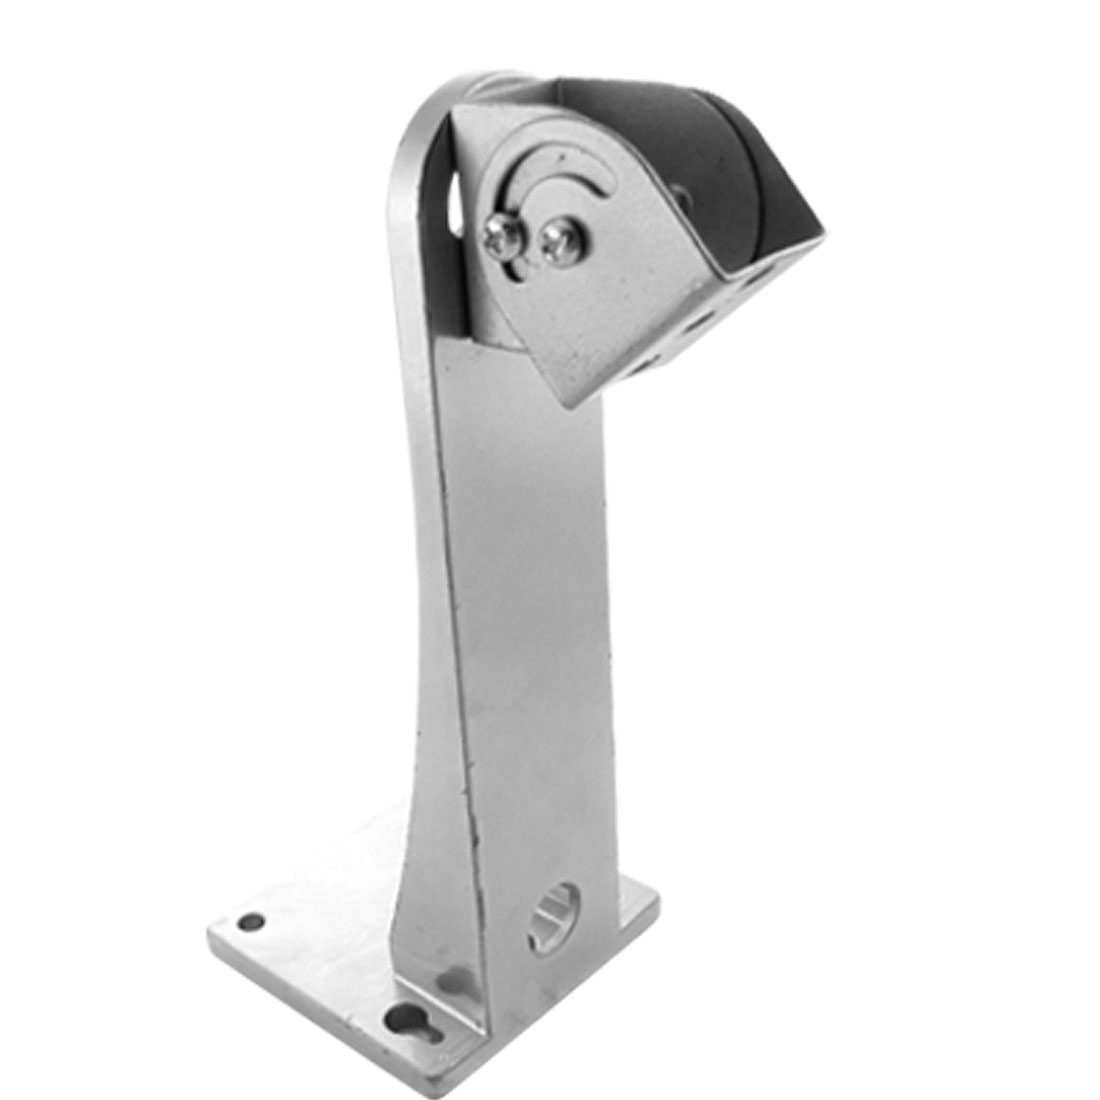 Metal Silver Tone Wall Mounting CCTV Security Camera Bracket Stand 6 1/2""